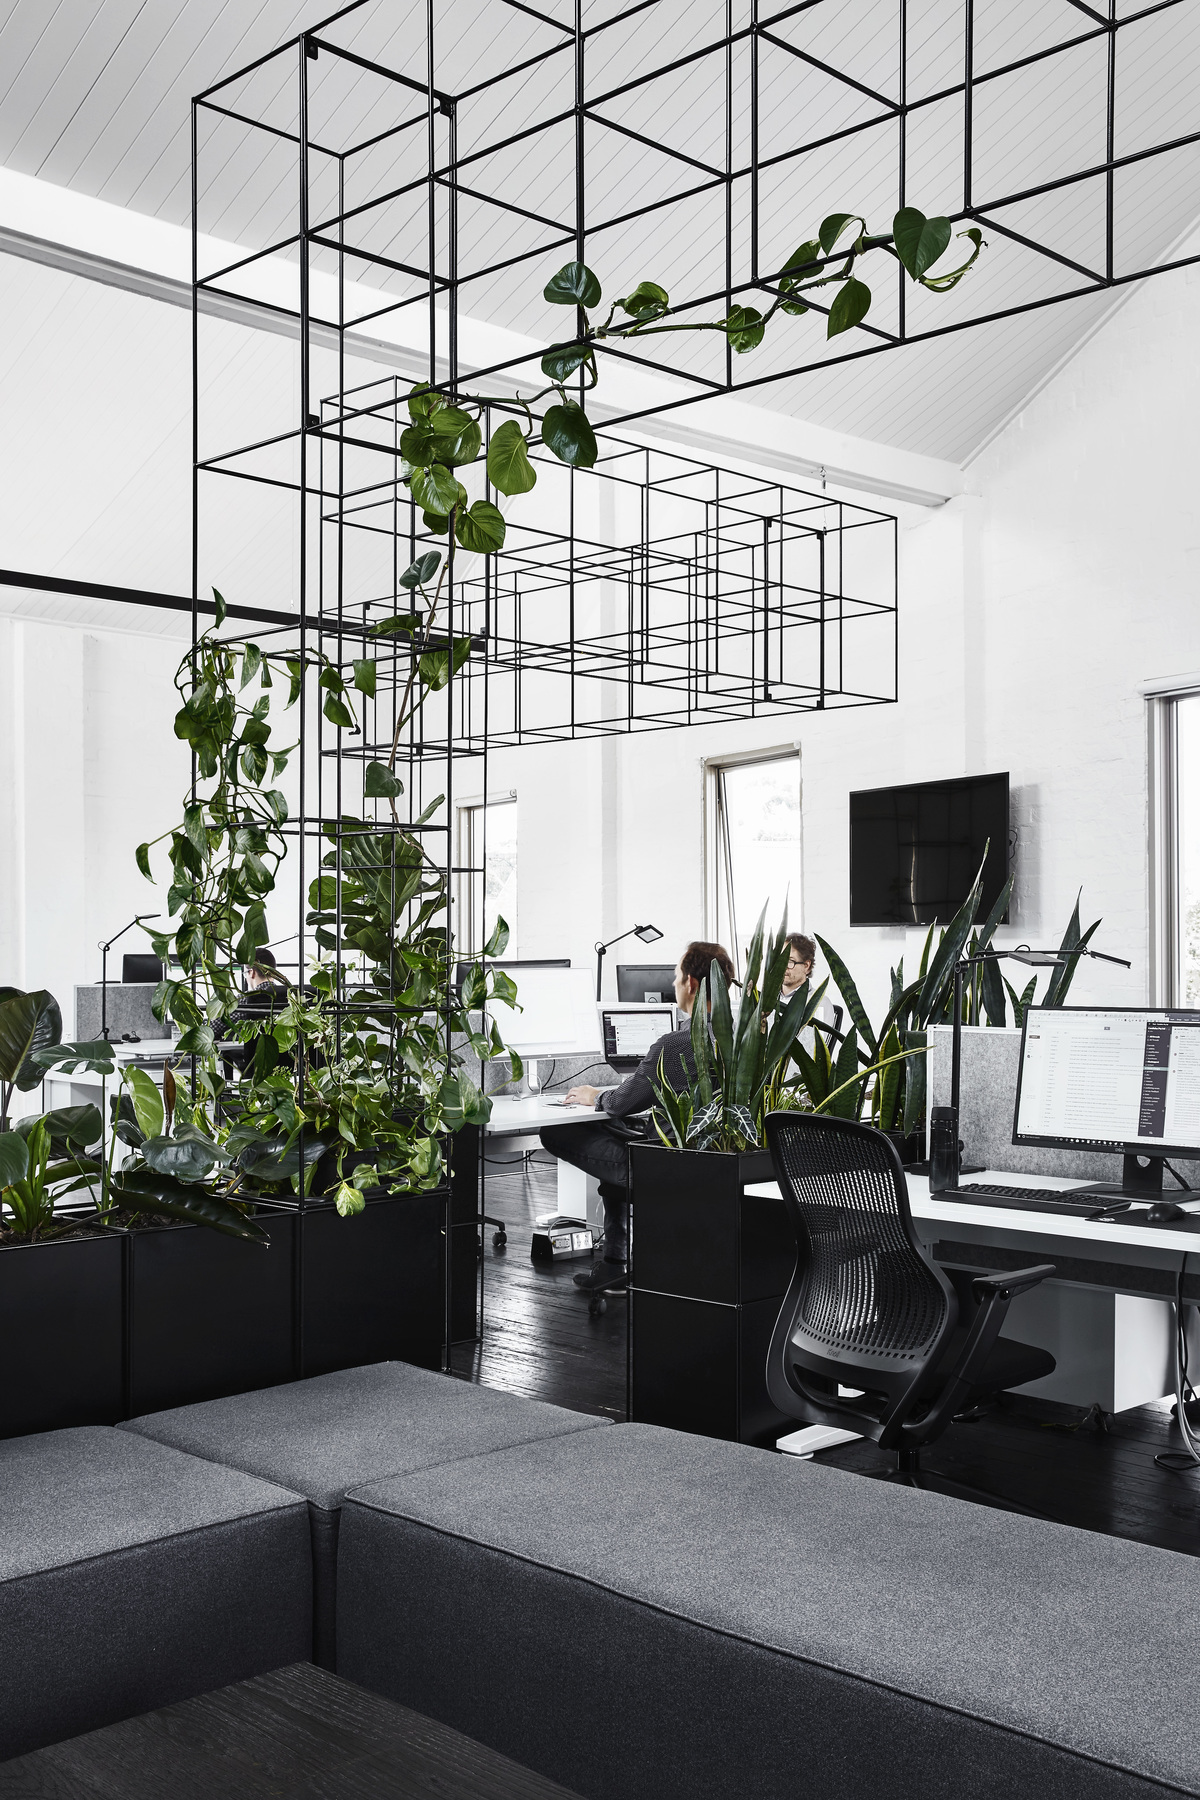 Candlefox Hq By Tom Robertson Architects, Modern Contemporary Design, Melbourne, Vic, Australia (14)